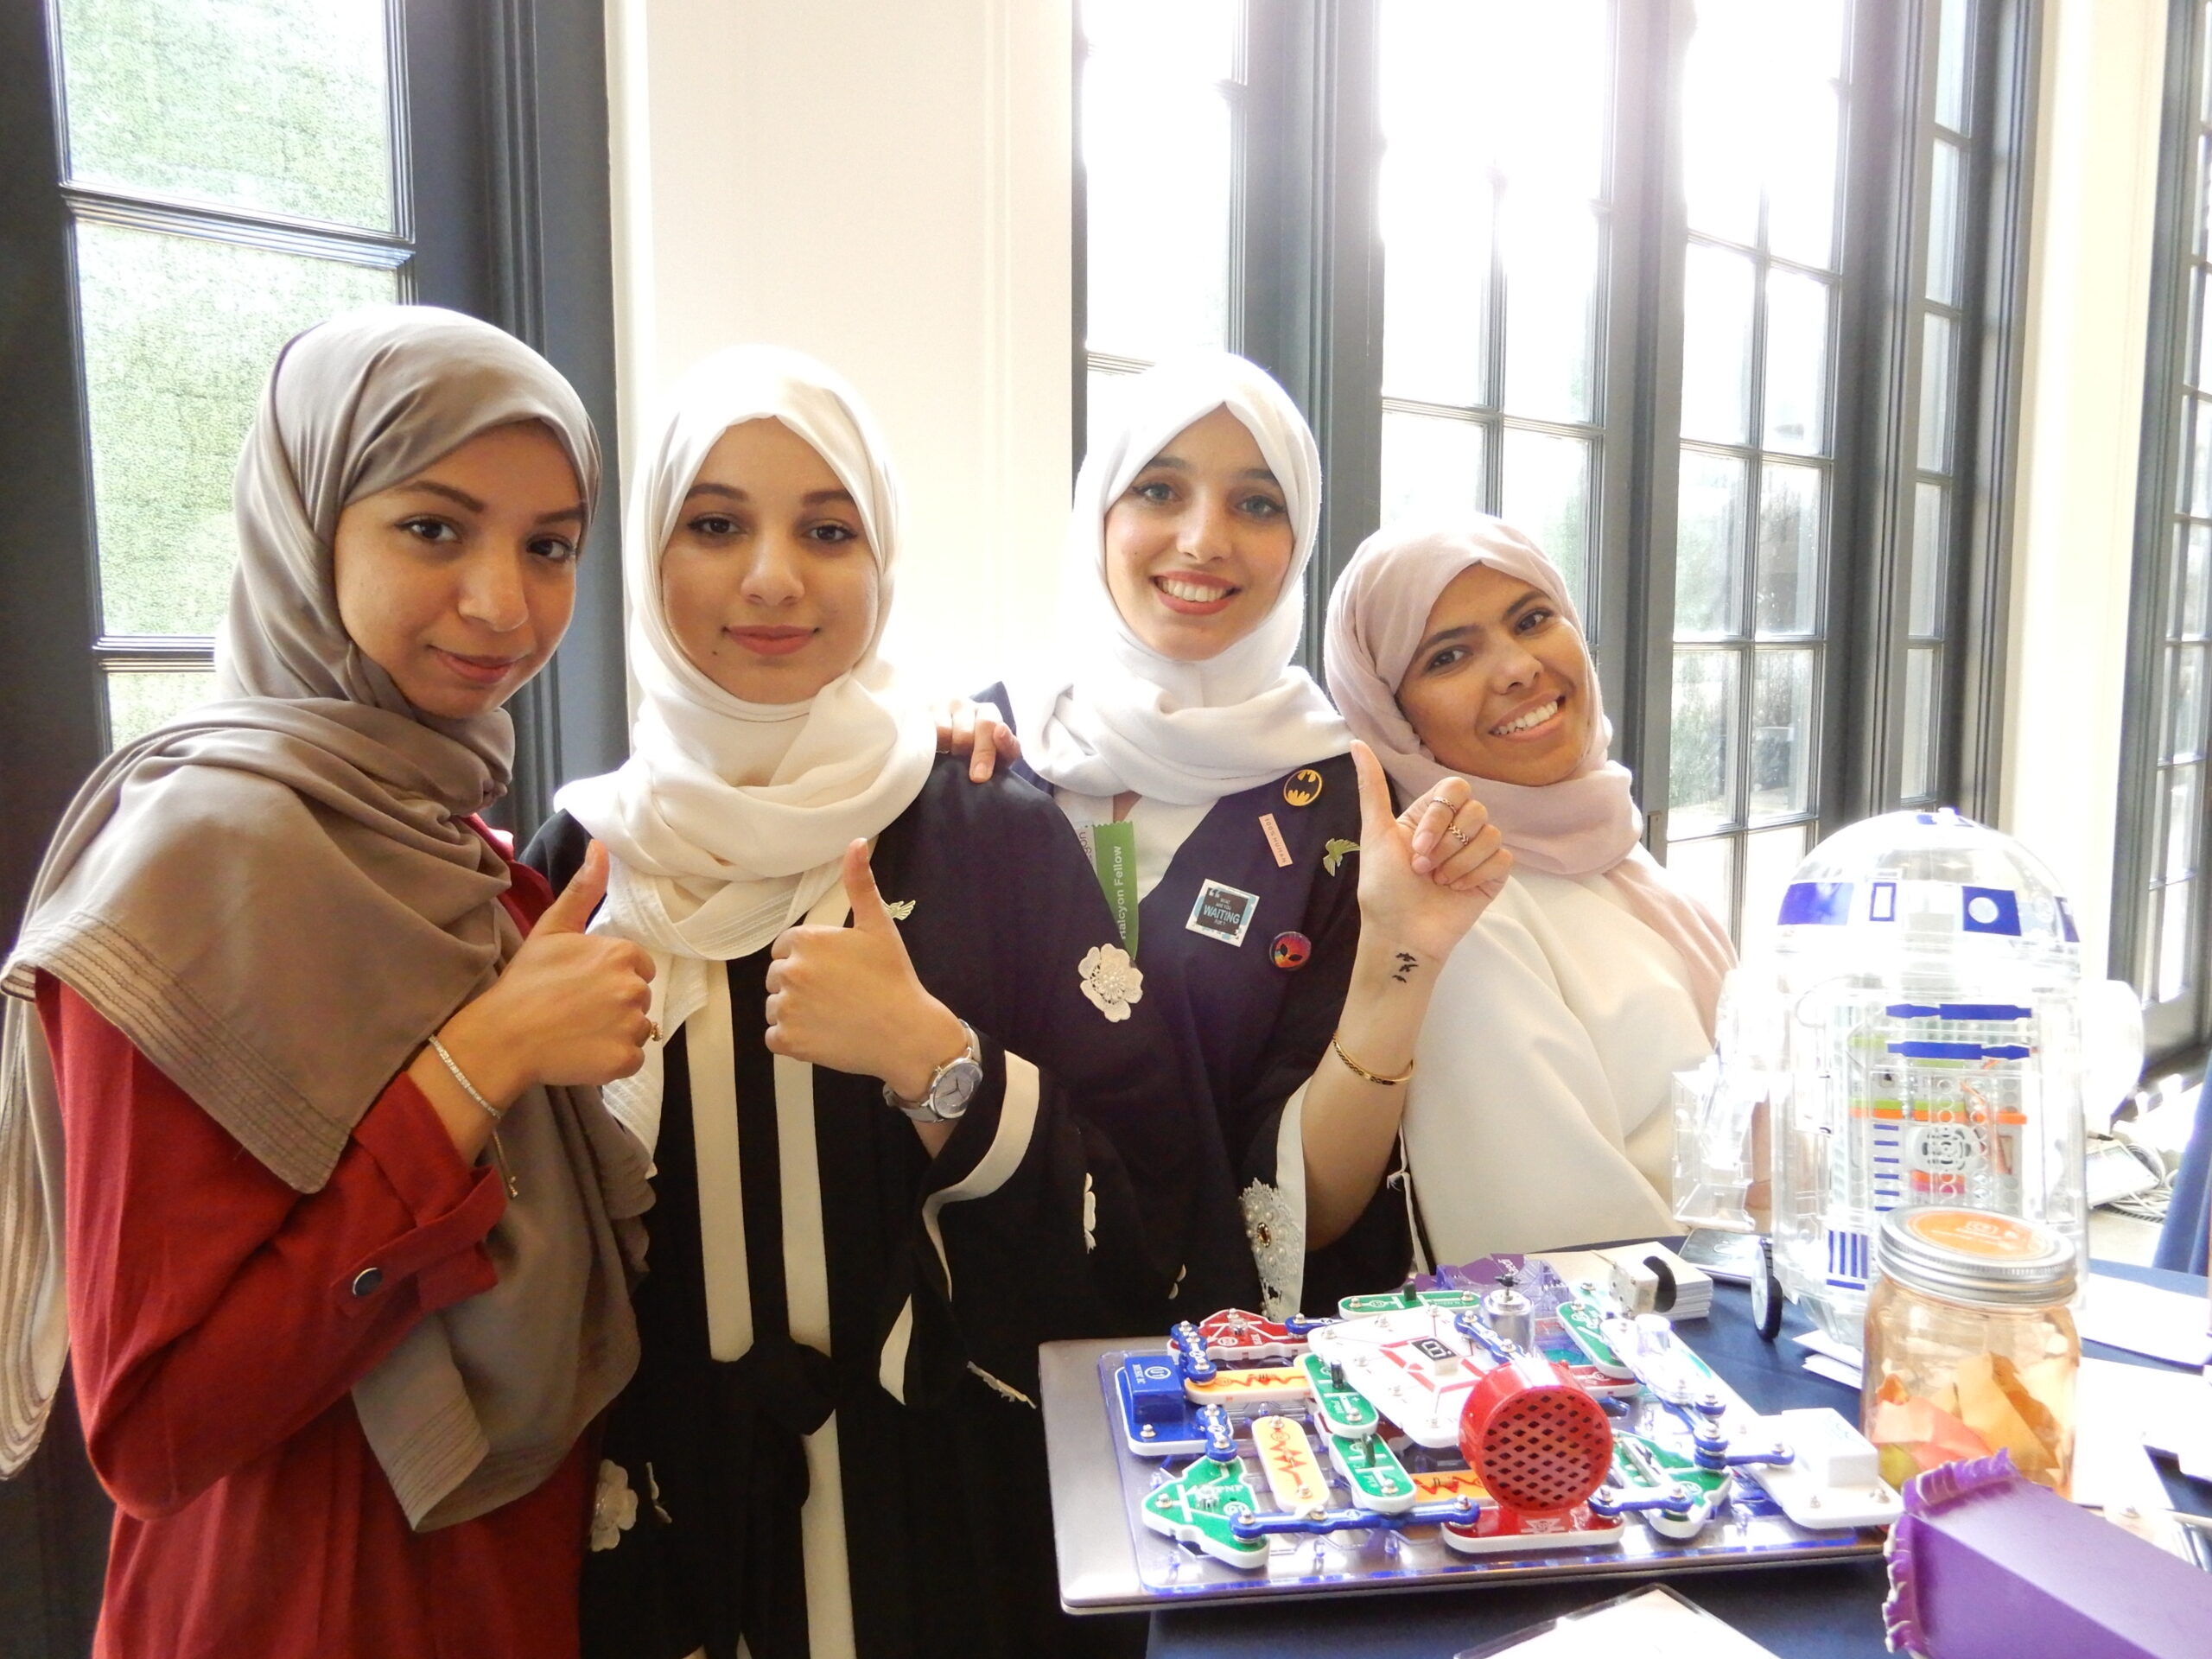 Four incubator fellows in hijabs at Halcyon incubator cohort kickoff